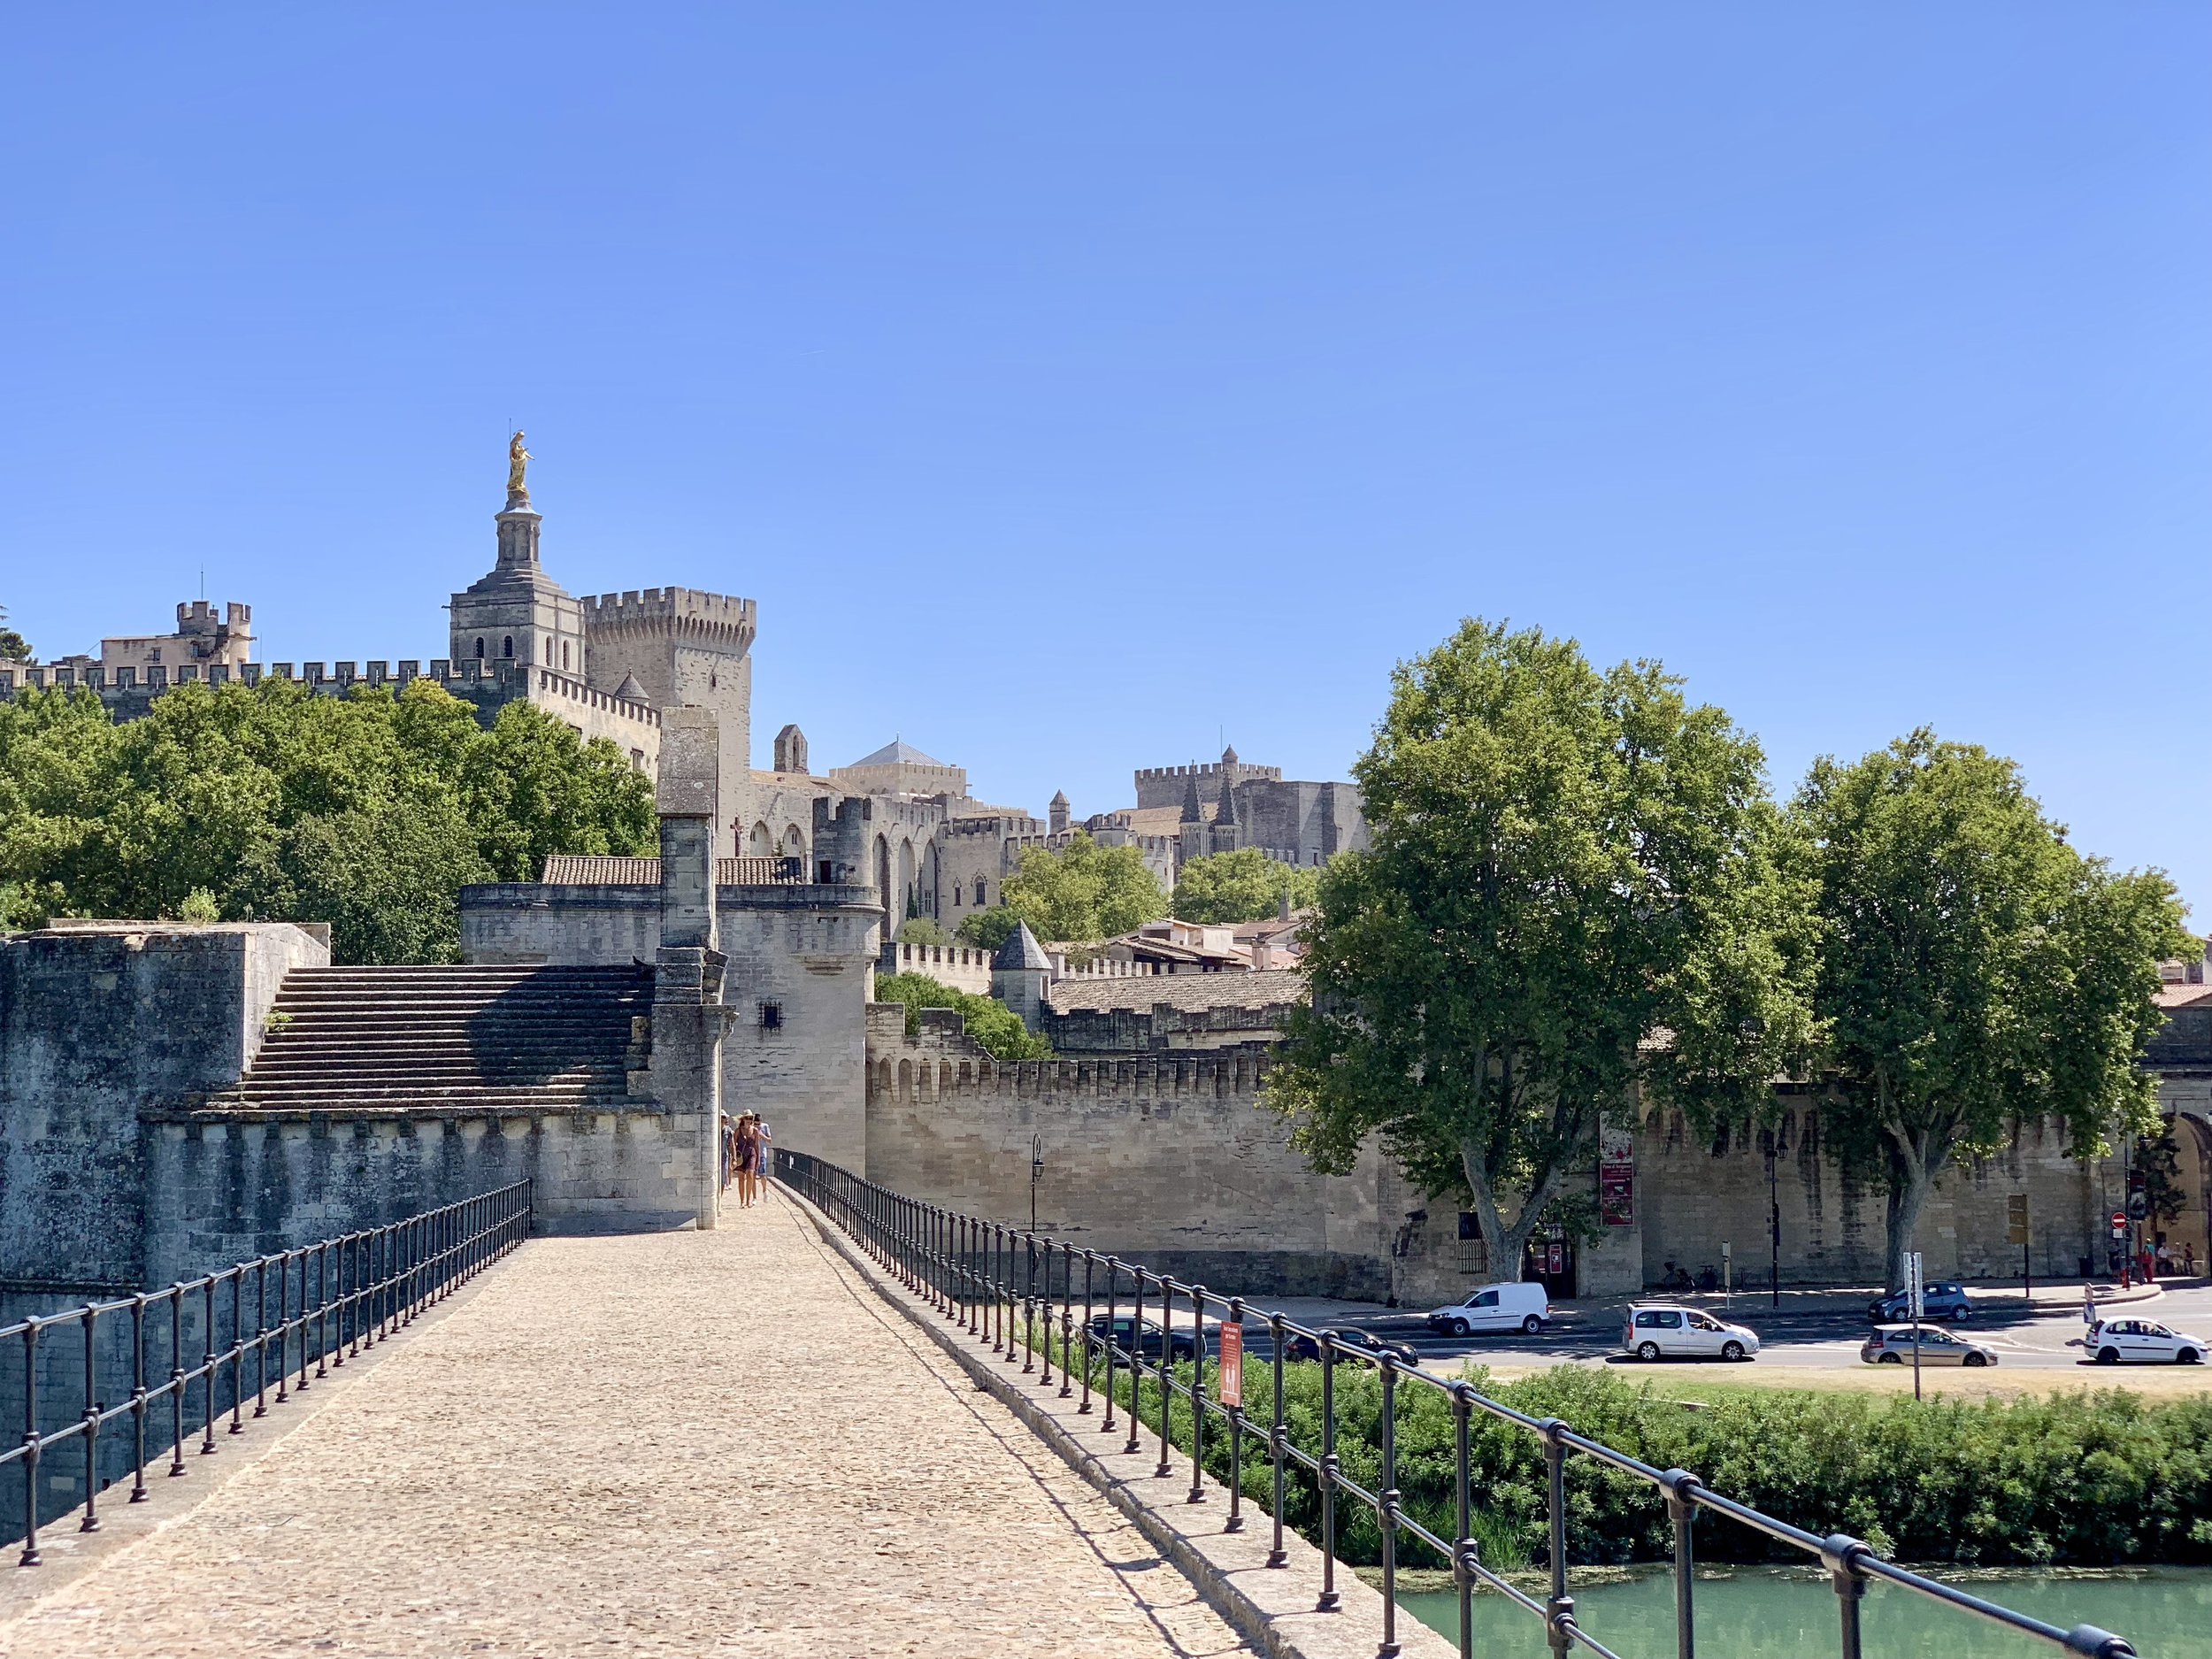 A view of Avignon from the Pont d'Avignon. August 24, 2019.